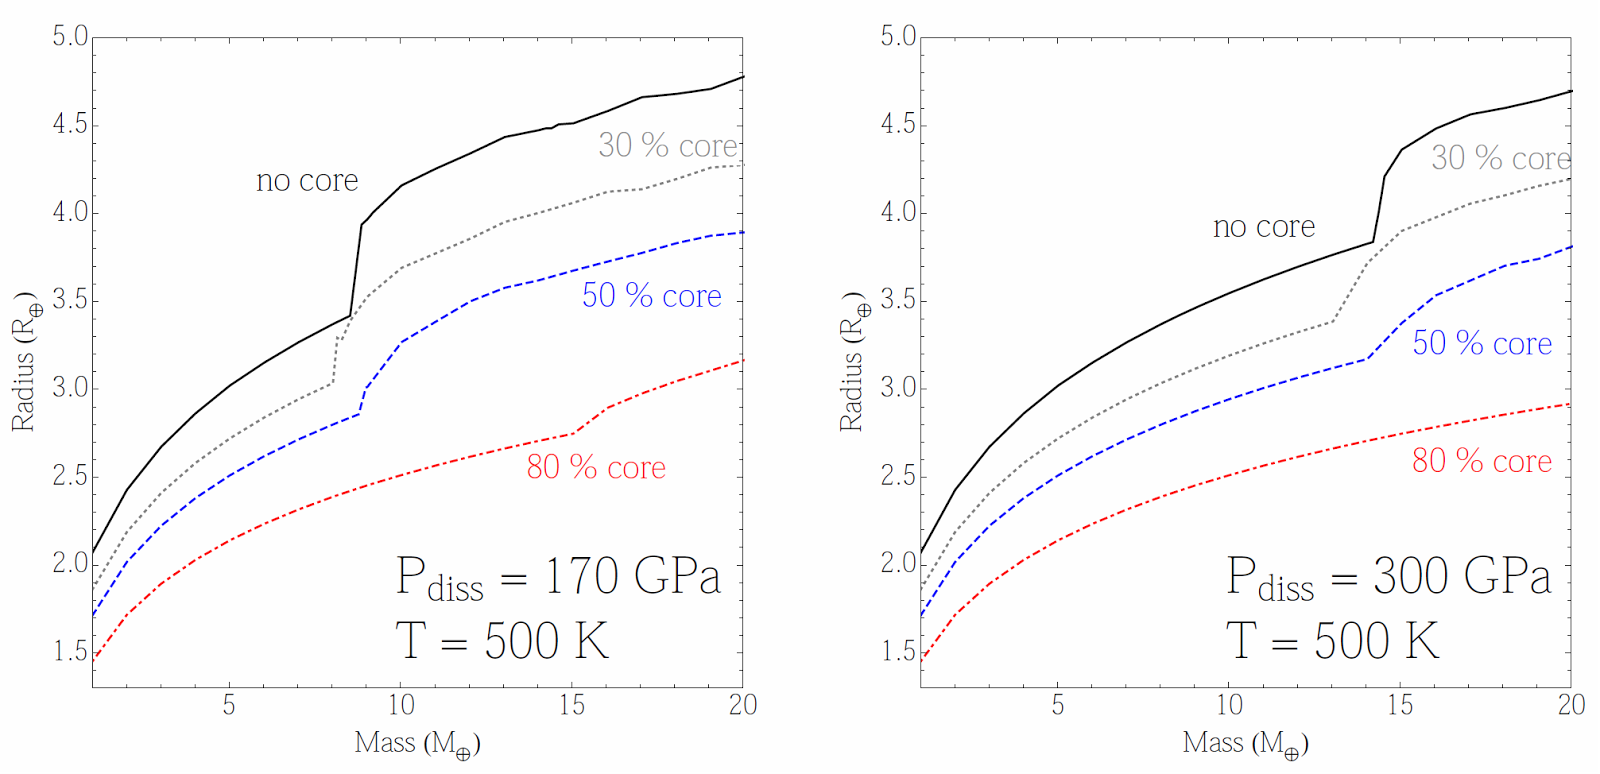 Beyond earthly skies sizing up methane planets figure 3 m r relation for methane planets with different mass fractions of a silicate core for a temperature of 500 k and assuming a dissociation pressure pooptronica